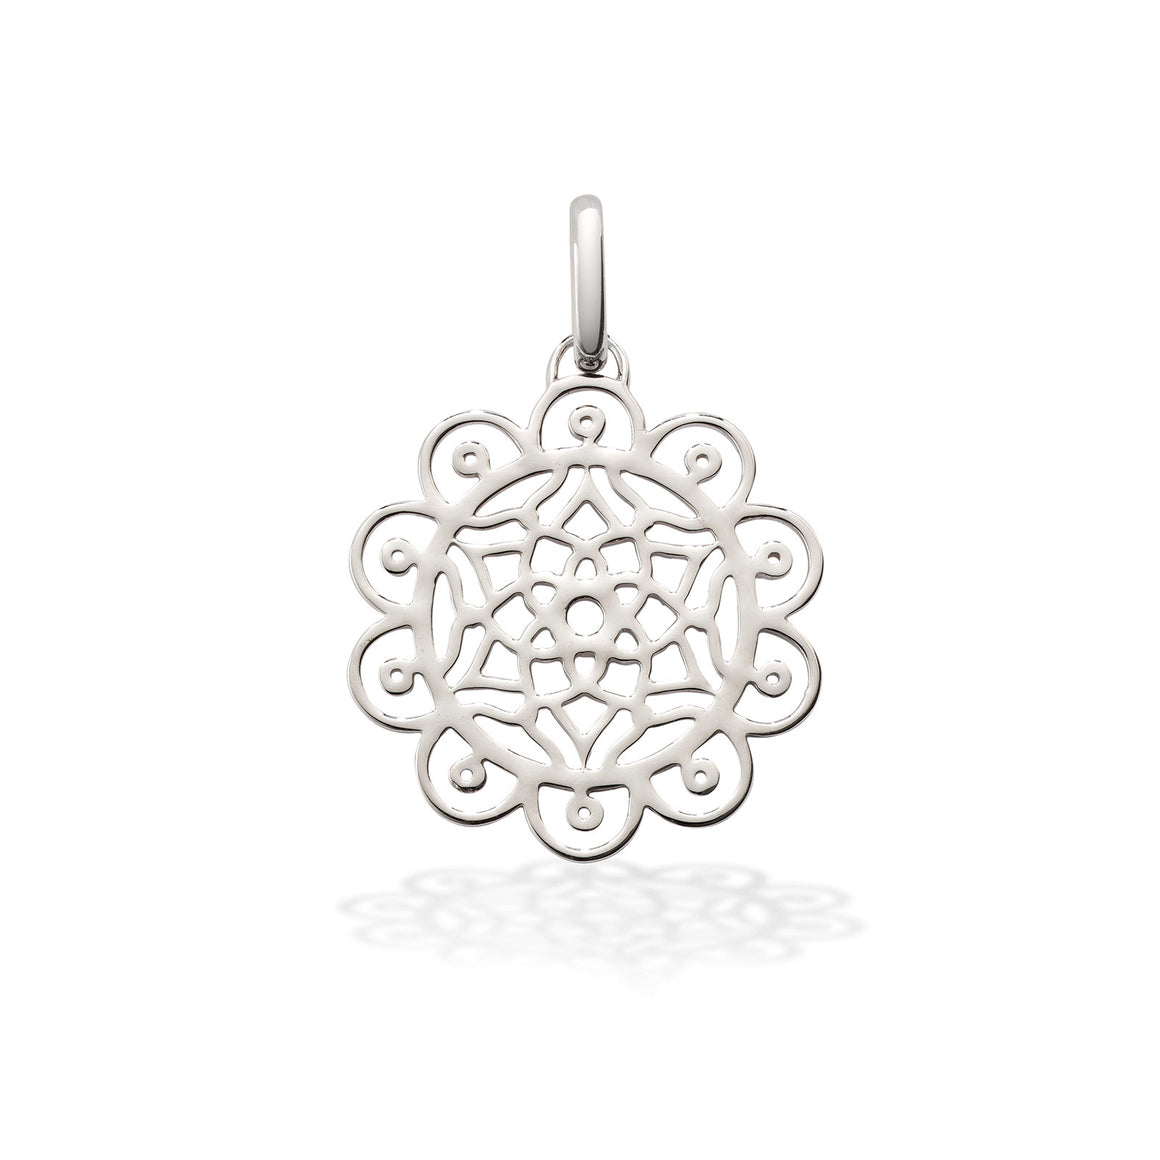 Amazing dreams pendant charm in silver by OAK Jewellery